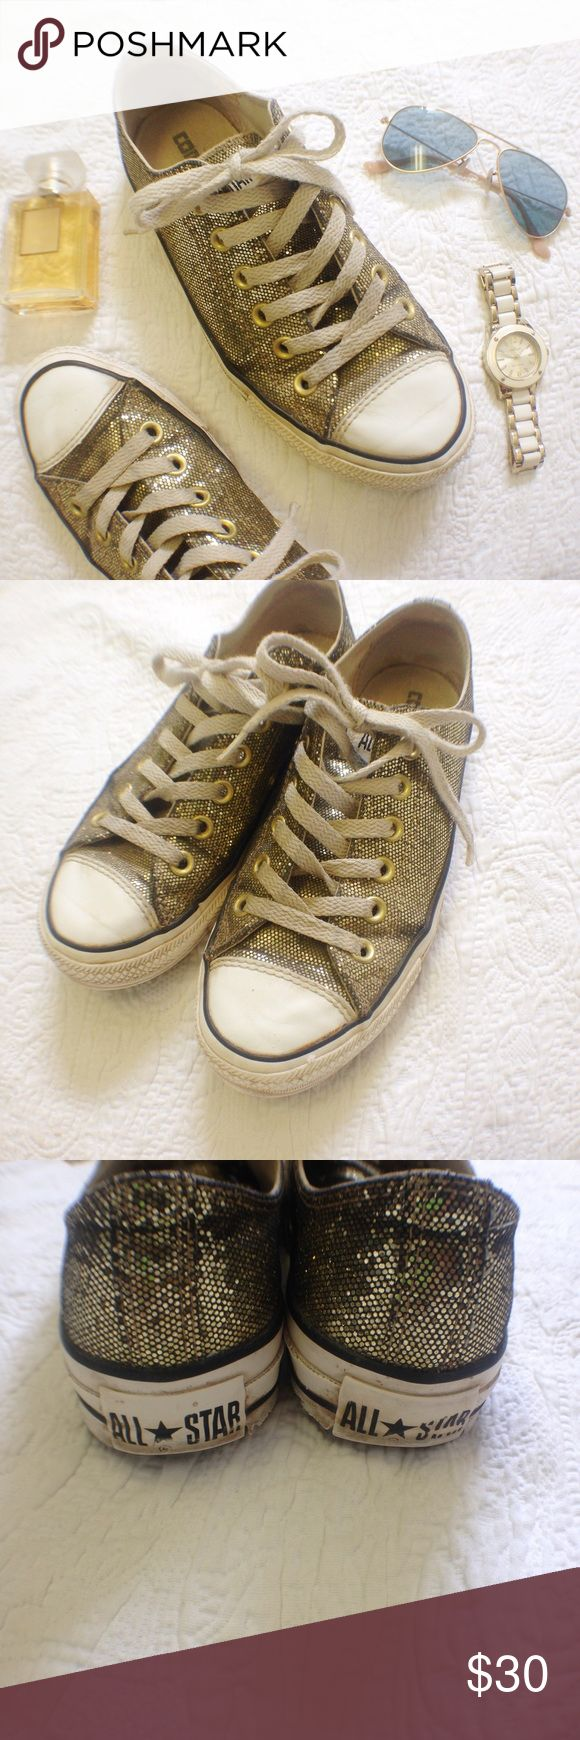 New Listing! Gold Glitter Converse Lows The sparkle!! These rare glitter Converse in gold are such a fun addition to any outfit. Condition is average - there are no flaws on the glitter/top area but the soles are worn as shown. Ships same day from a smoke free home! Converse Shoes Sneakers